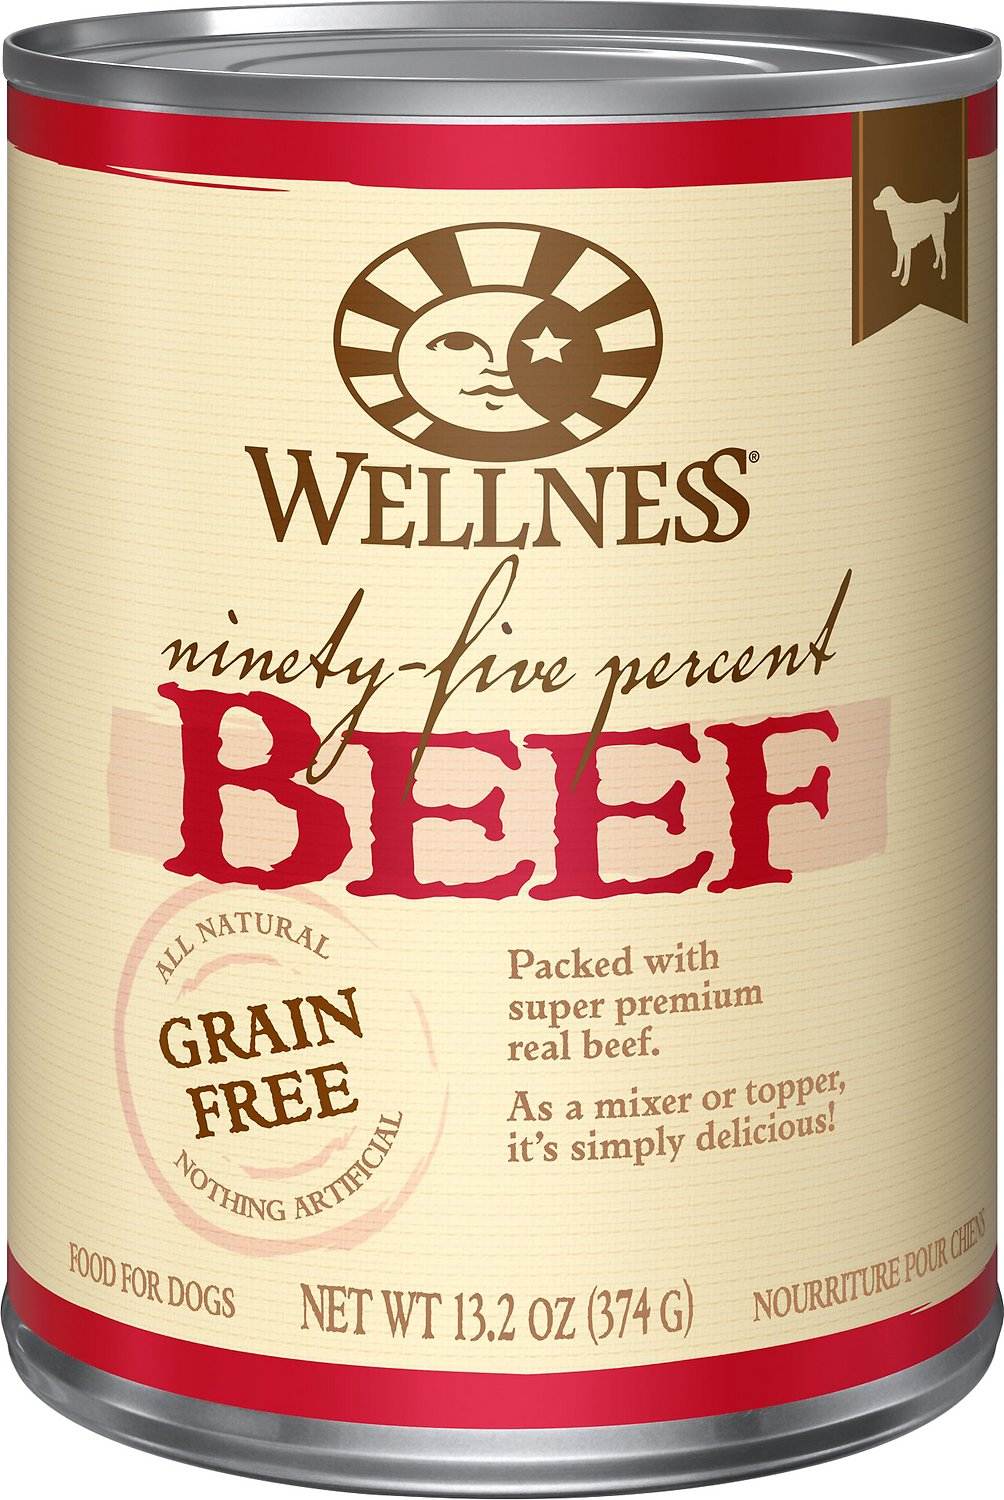 Wellness 95% Beef Grain-Free Canned Dog Food, 13.2-oz